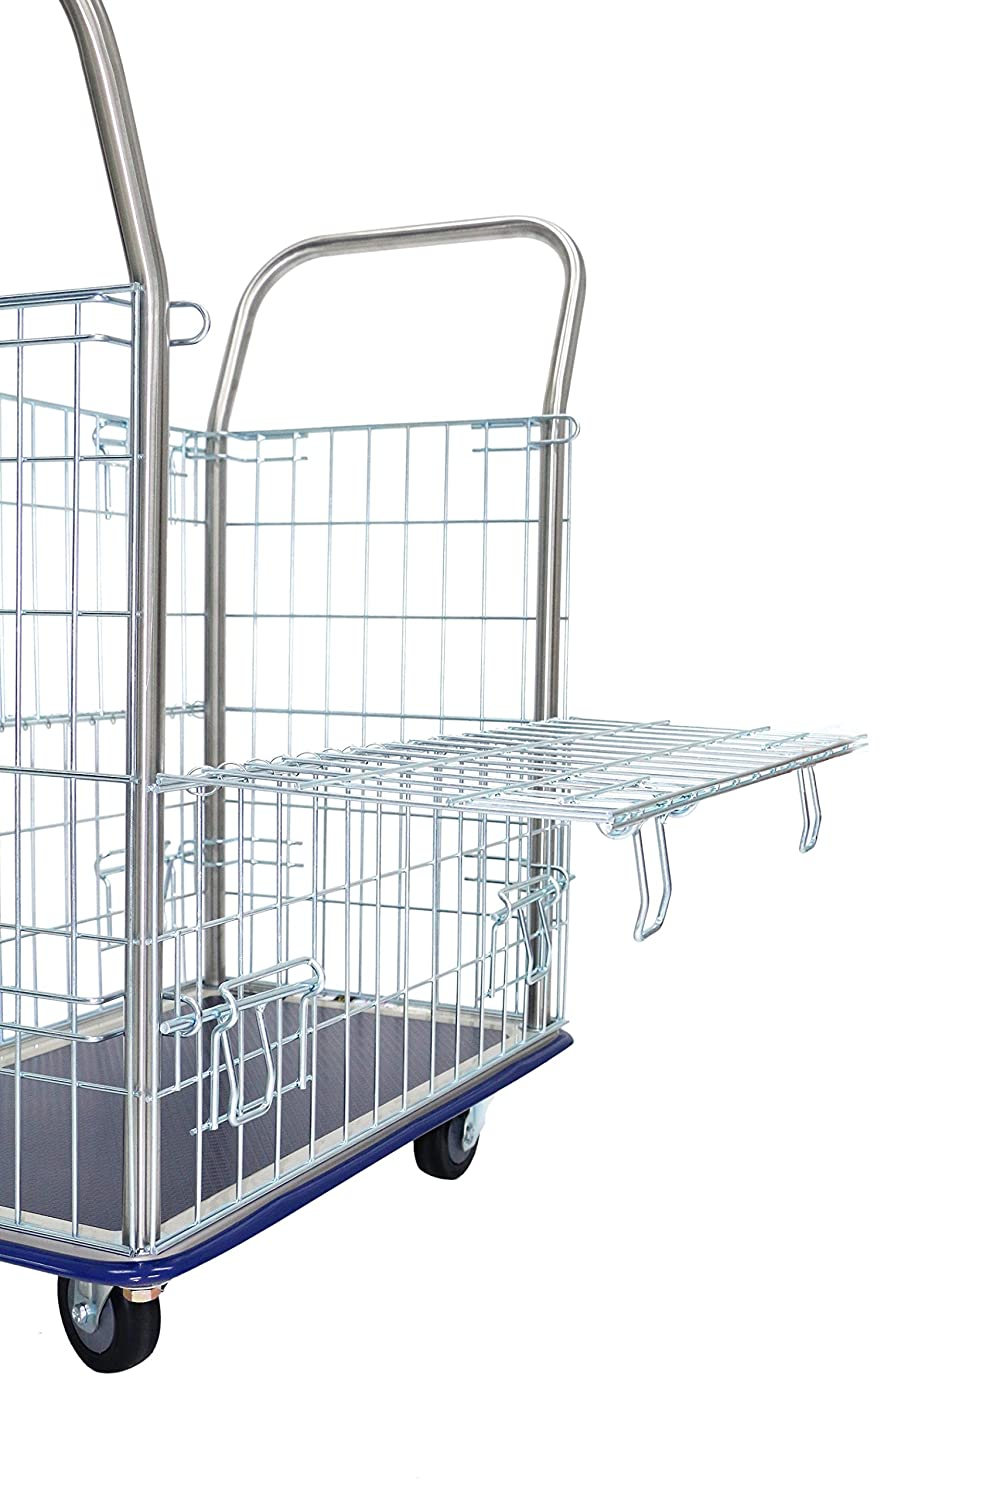 Wire Cage Truck T-EQUIP Mesh Trolley GW-113 silver // blue WxDxH: 82 x 48,5 x 100 cm Storage Cart Crate load capacity: 220 kg chrome-plated Platform Dolly